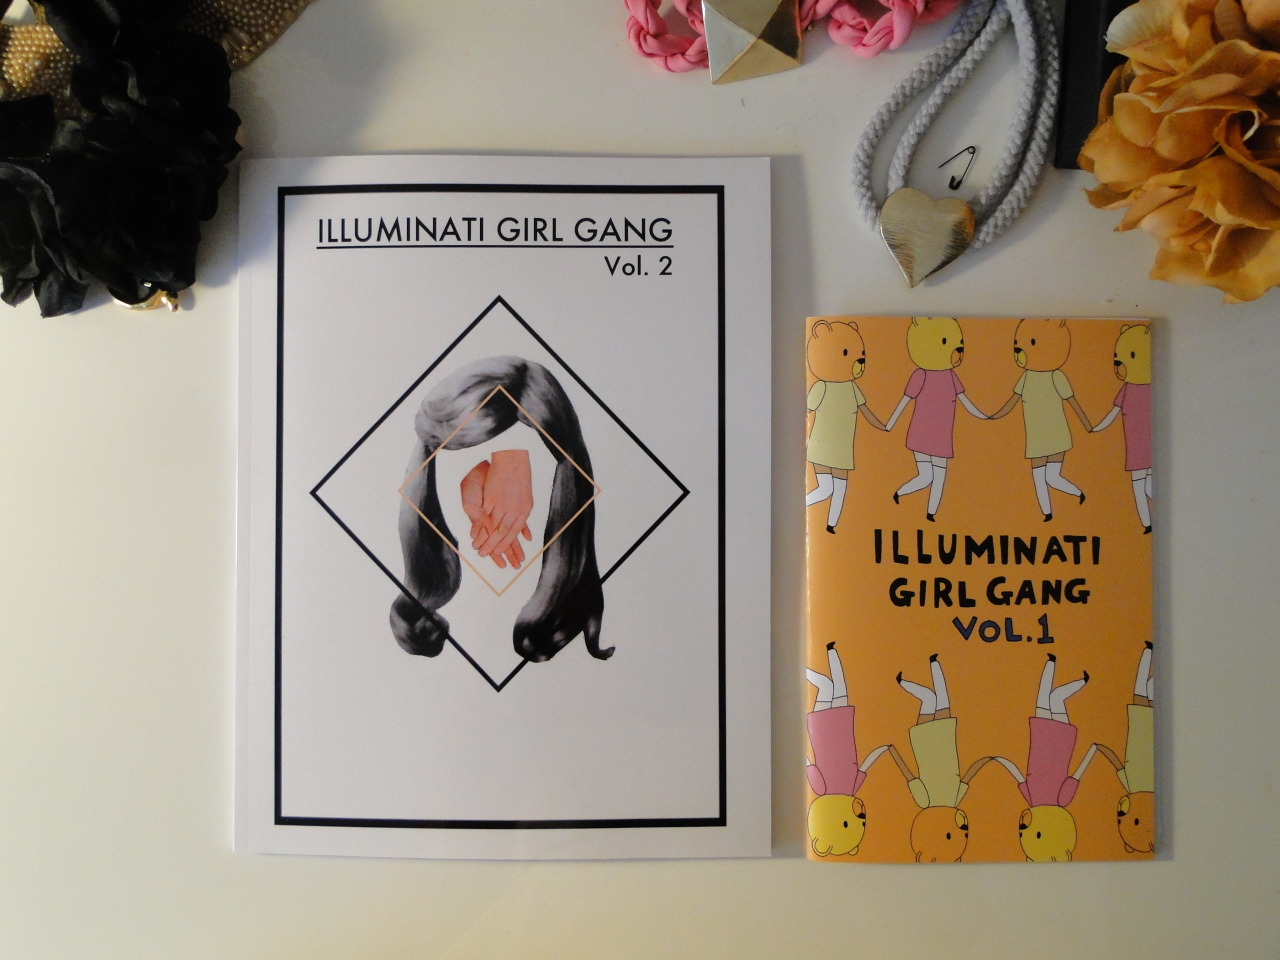 seemstween:  ***ILLUMINATI GIRL GANG GIVEAWAY*** I was cleaning out my room and i found ~2 previously 'lost forever' copies of Illuminati Girl Gang Vol. 1 (the one on the right). The first issue was a ~5x7 handmade, full-color zine featuring work from Grace Miceli, Mira Gonzalez, Luna Miguel, Elaine Sun, Maggie Lee, Stacey Teague + More. (Cover art by Yippy Whippy)  Its a funny thing to be able to concretely see progression. I feel like I am watching my little bb grow up :')  I've decided to do a giveaway for the 2 copies that I found. Reblog this post and follow the IGG blog for a chance to enter (only one entry per person, no matter how many reblogs you manage to reblog). I will pick 2 winners via random number generator and announce the results on February 18th, the release date for IGG Vol. 3.   The winners of the IGG giveaway are lua-milko and virginsandvegetables!  Thanks everyone for participating! If you didn't win and want to pick up a copy of the latest issue of IGG, you can do so here.